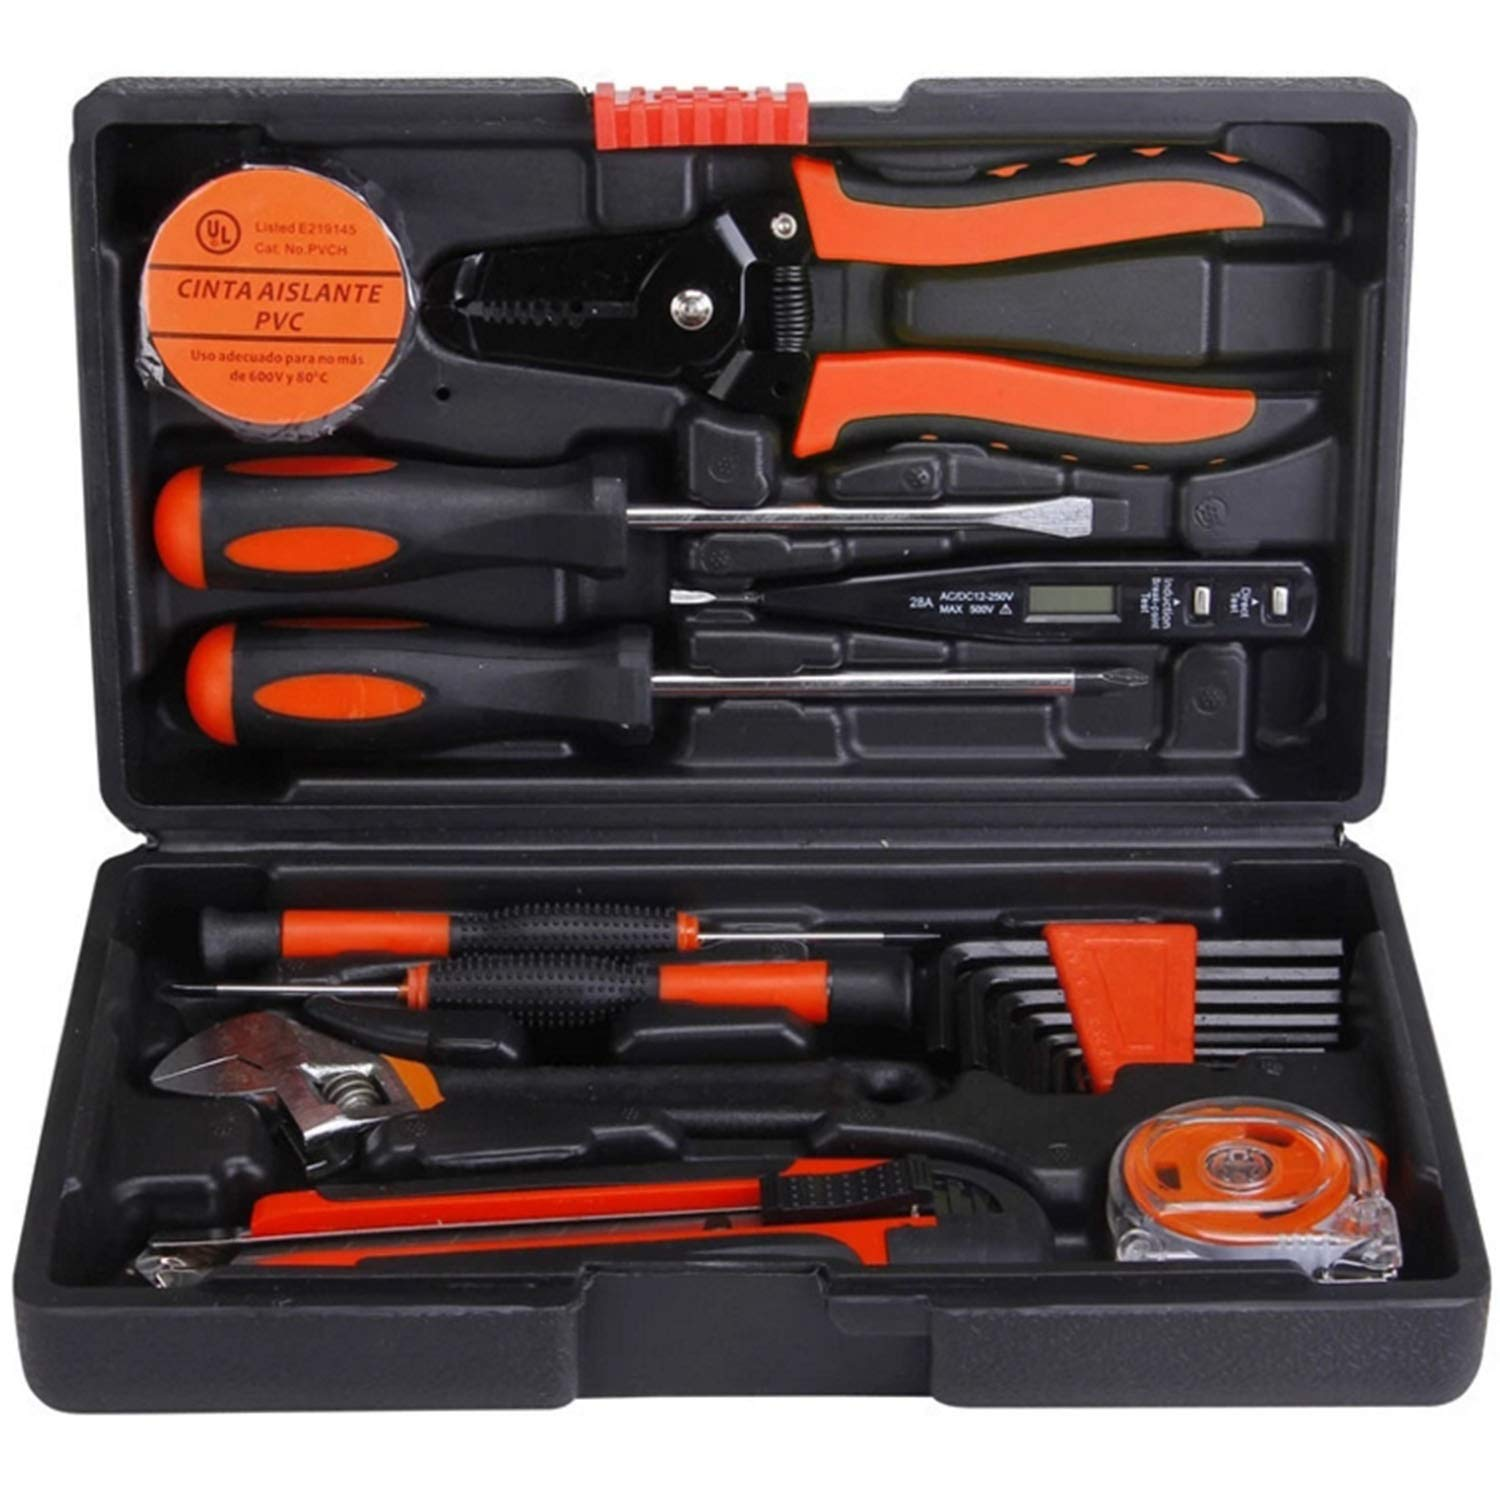 Your only family Practical Household Hardware Toolbox Combination Sets Hand Tools Electrical Repair Gifts 20 Telecommunications Tool Sets Durable